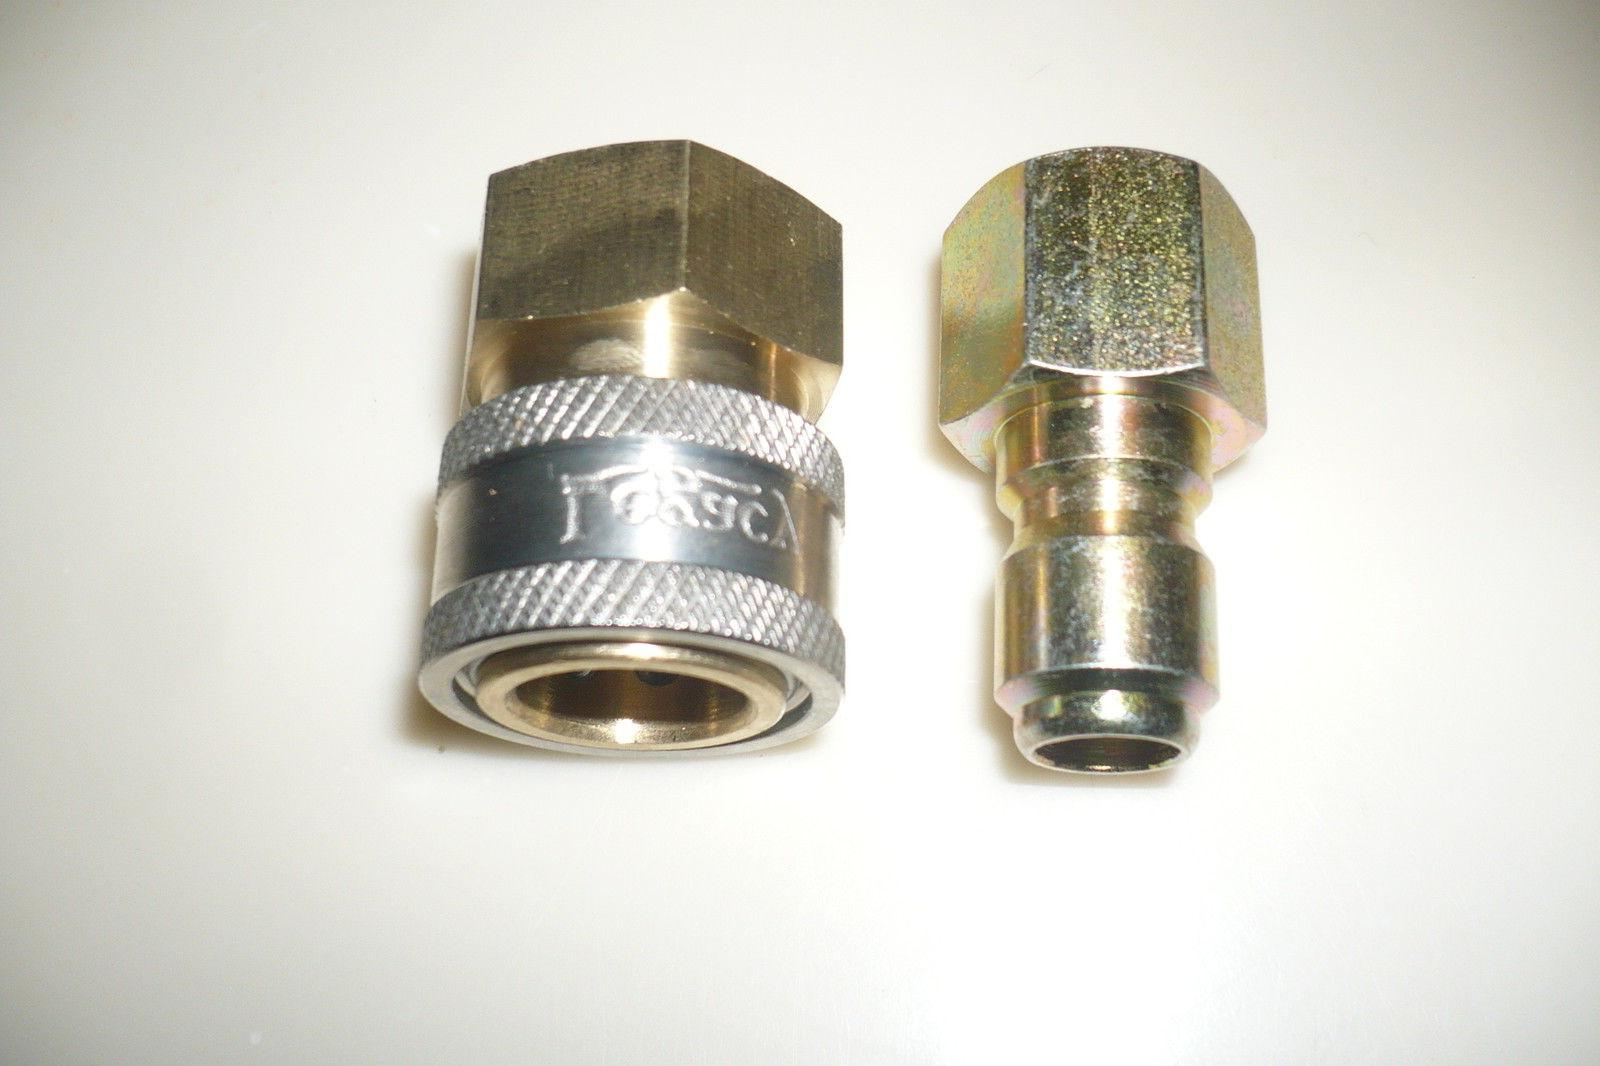 3 8 quick connect fittings for pressure